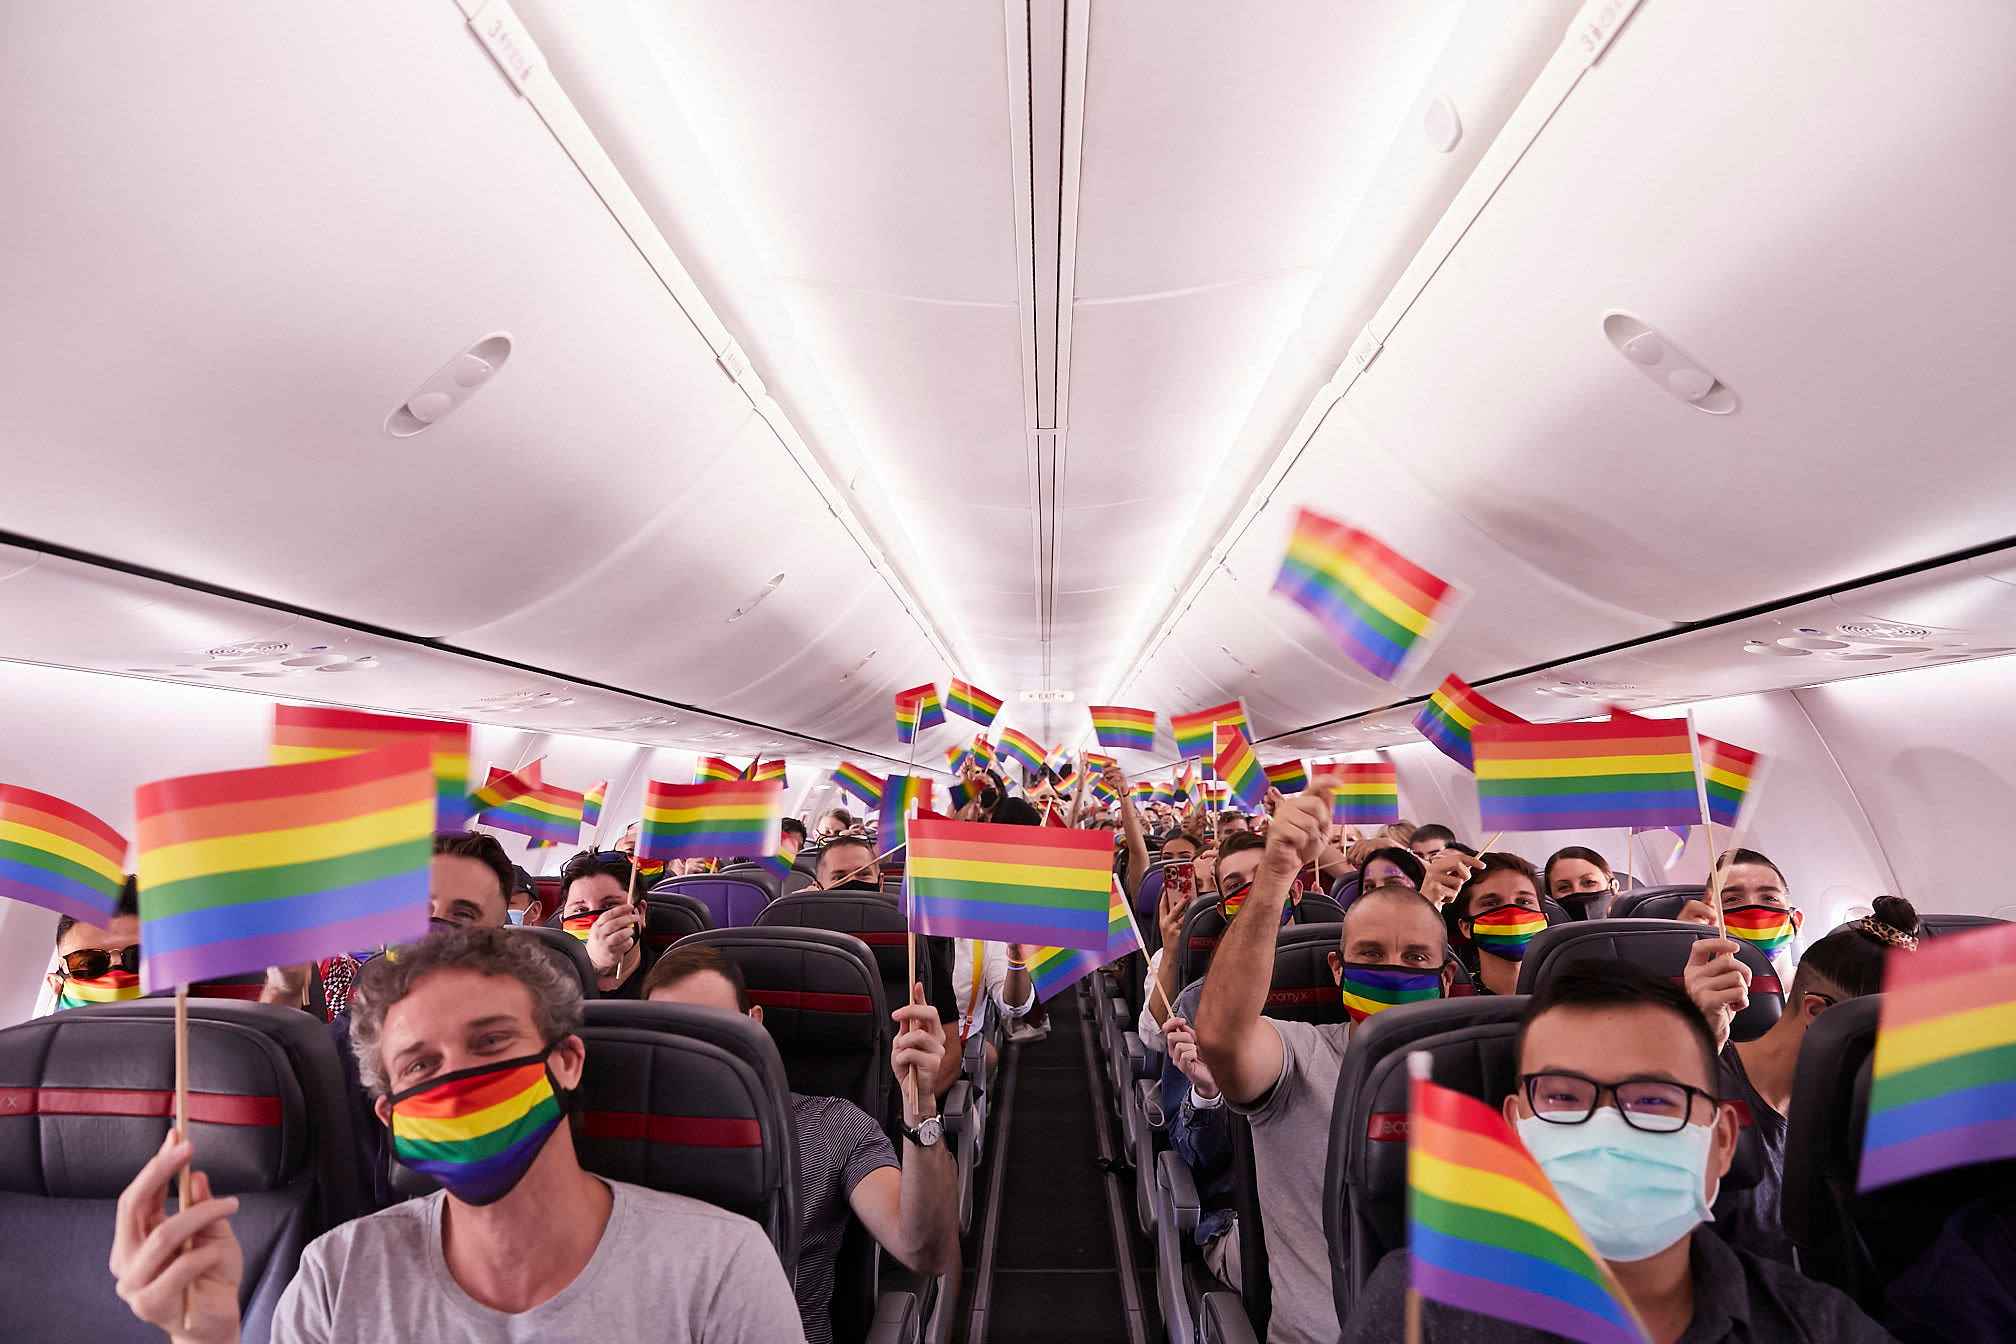 Passengers on Virgin Australia's Pride Flight wave rainbow flags